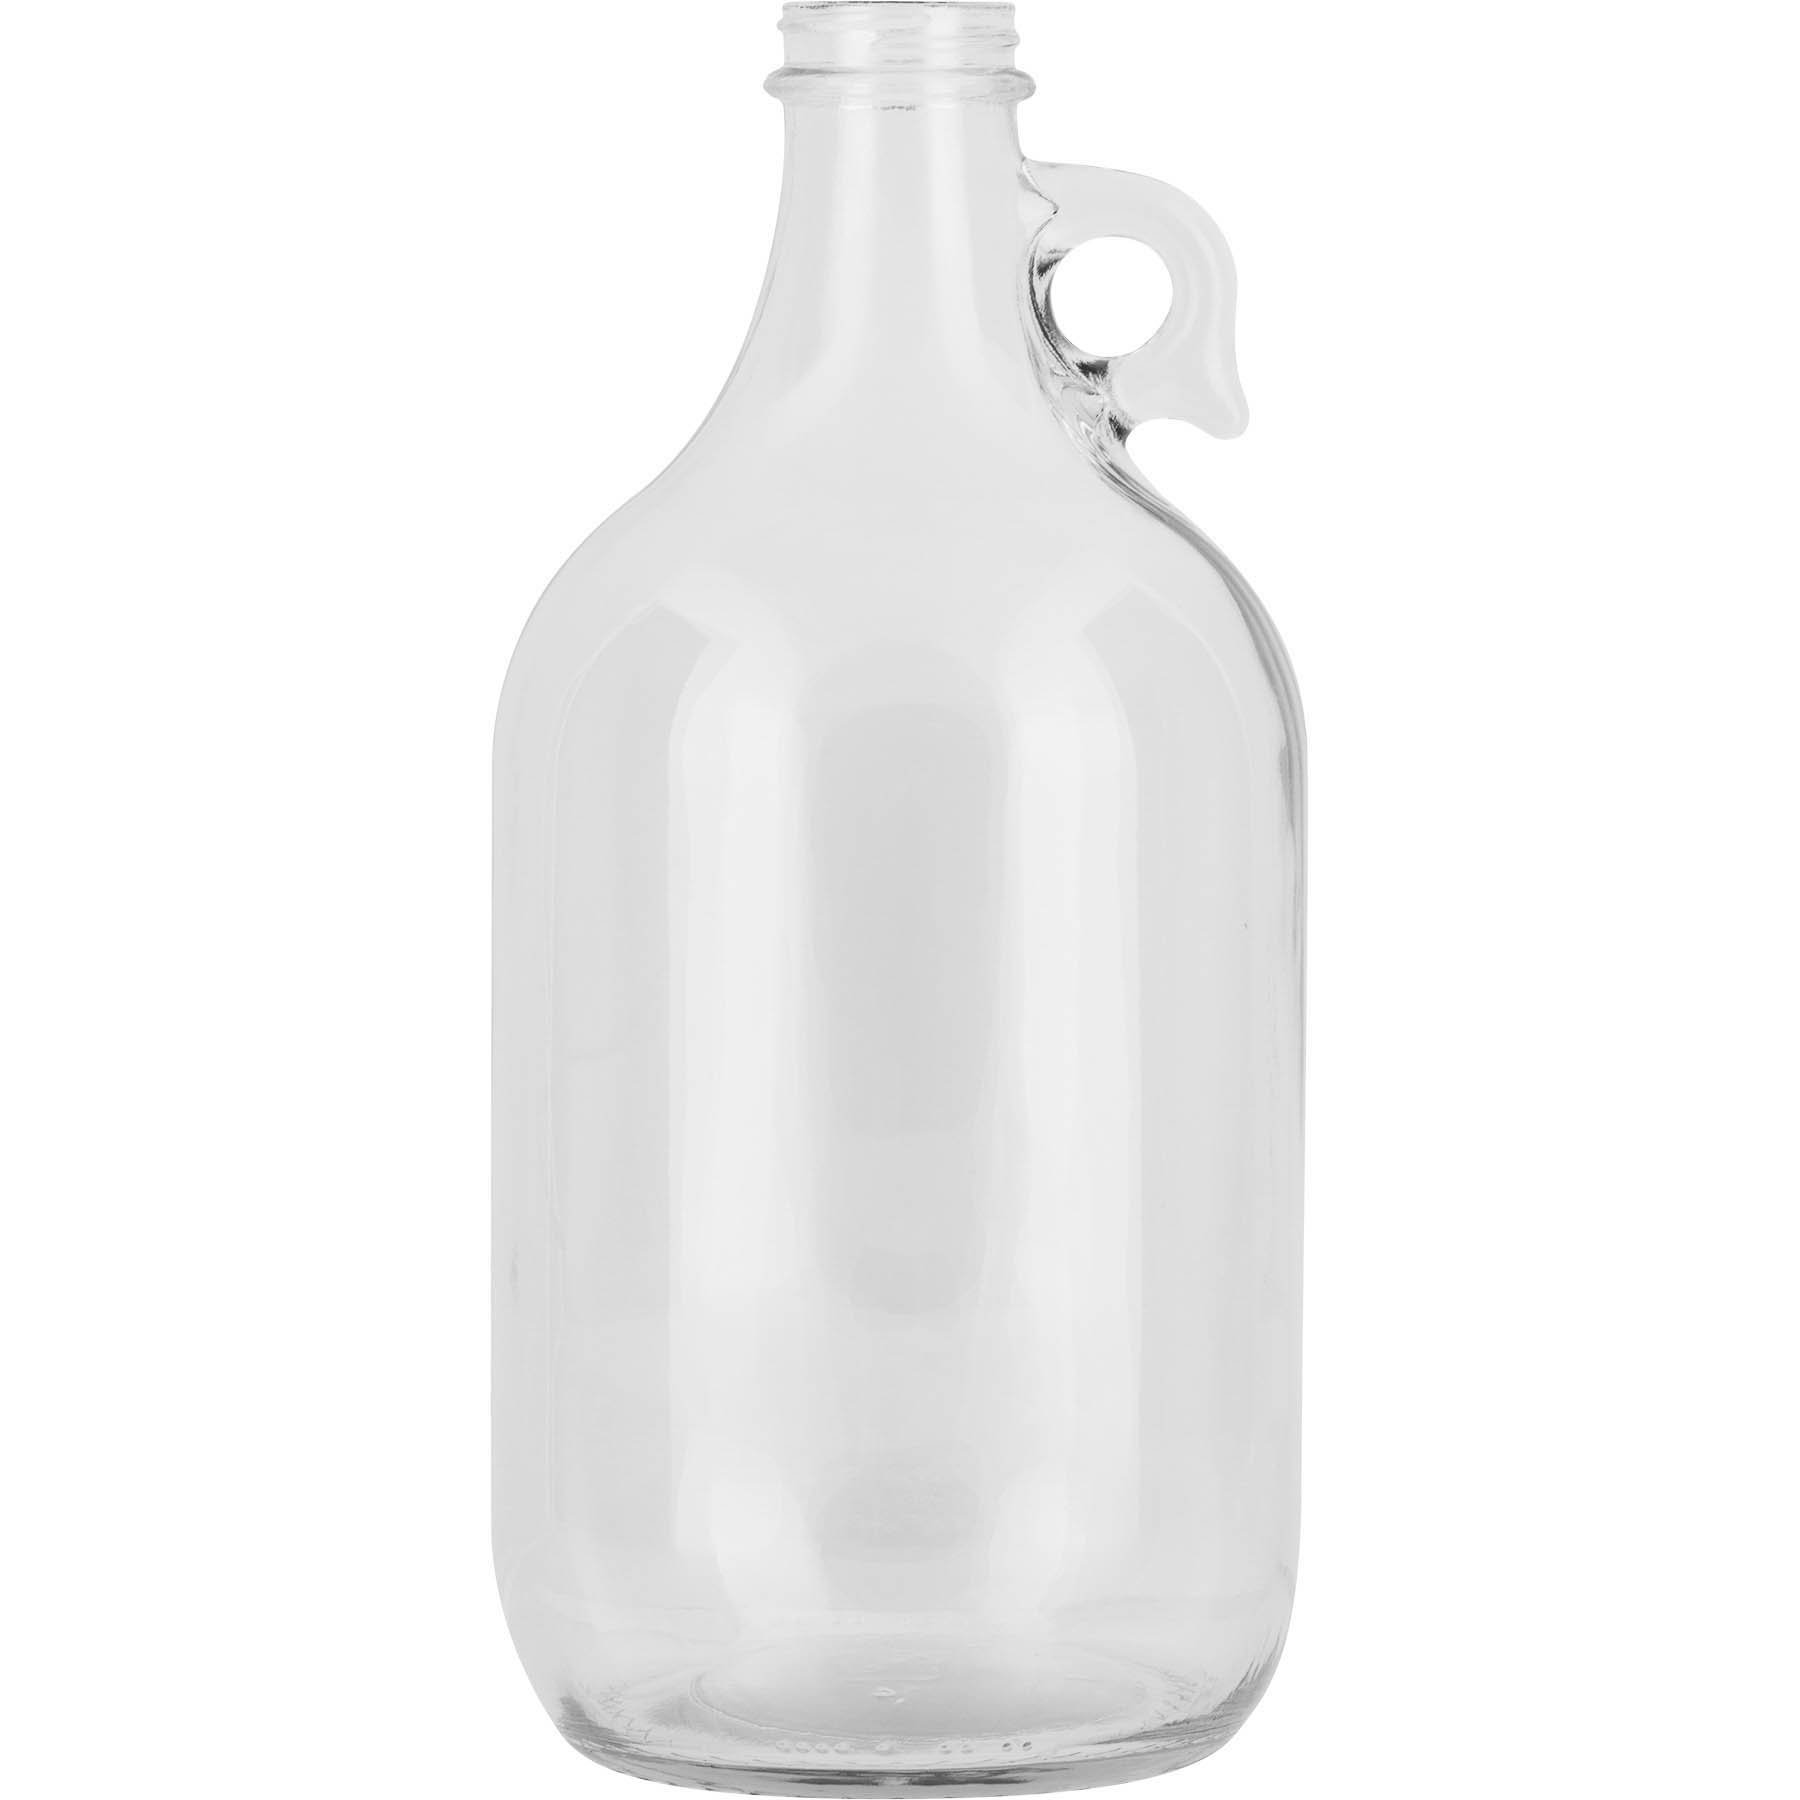 The Cary Company 30W64G 1/2 gal Glass Beer Growlers, 64 oz., Clear (Pack of 6)